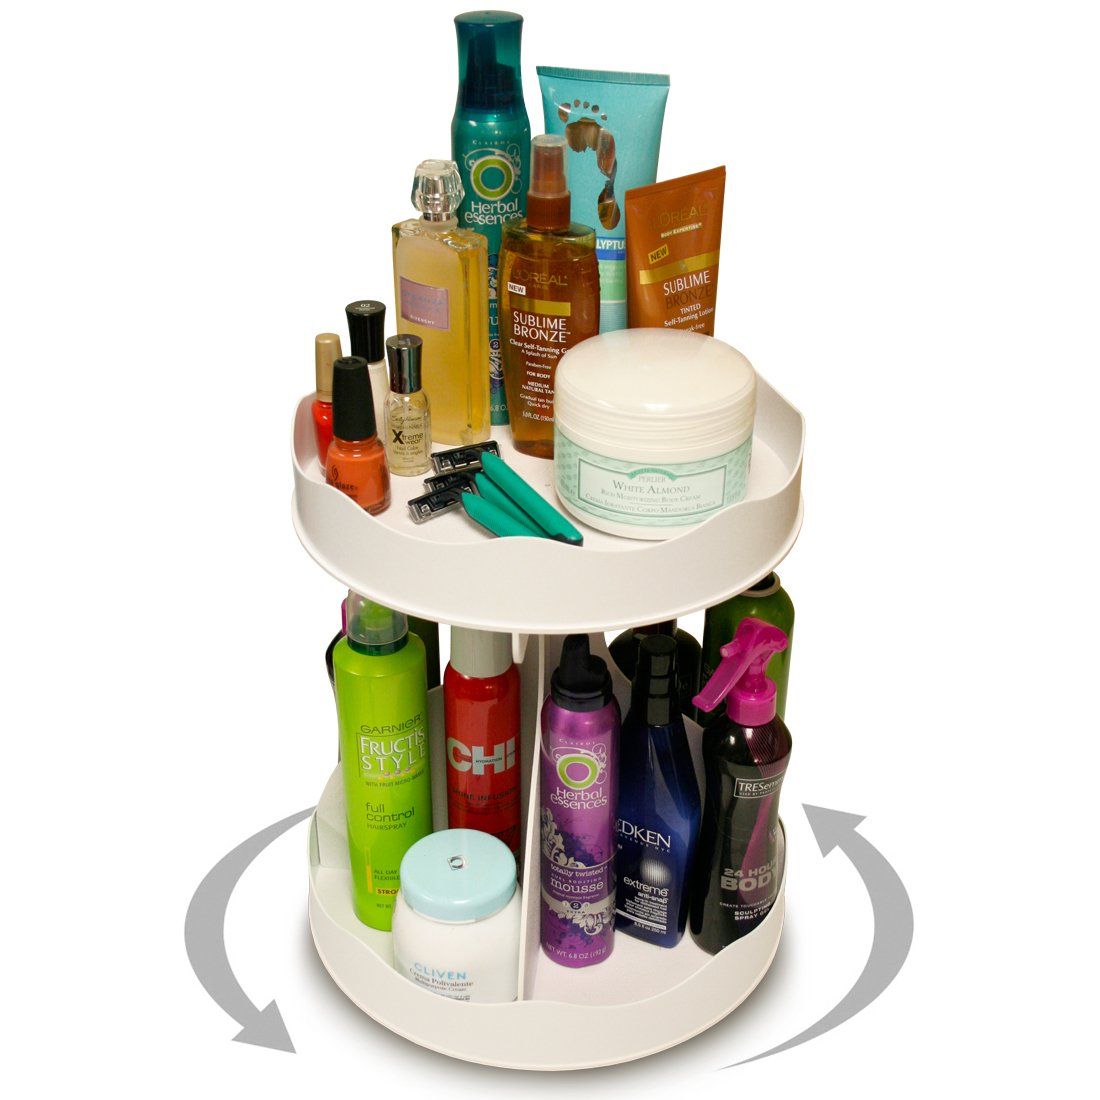 Cosmetic or Makeup Organizer ''White'' That Spins for Easy Access to All Your Beauty Essentials, No More Clutter! Only Requires 12'' of Space on Counter & Holds Taller Bottles.. Proudly Made in the USA! by PPM.